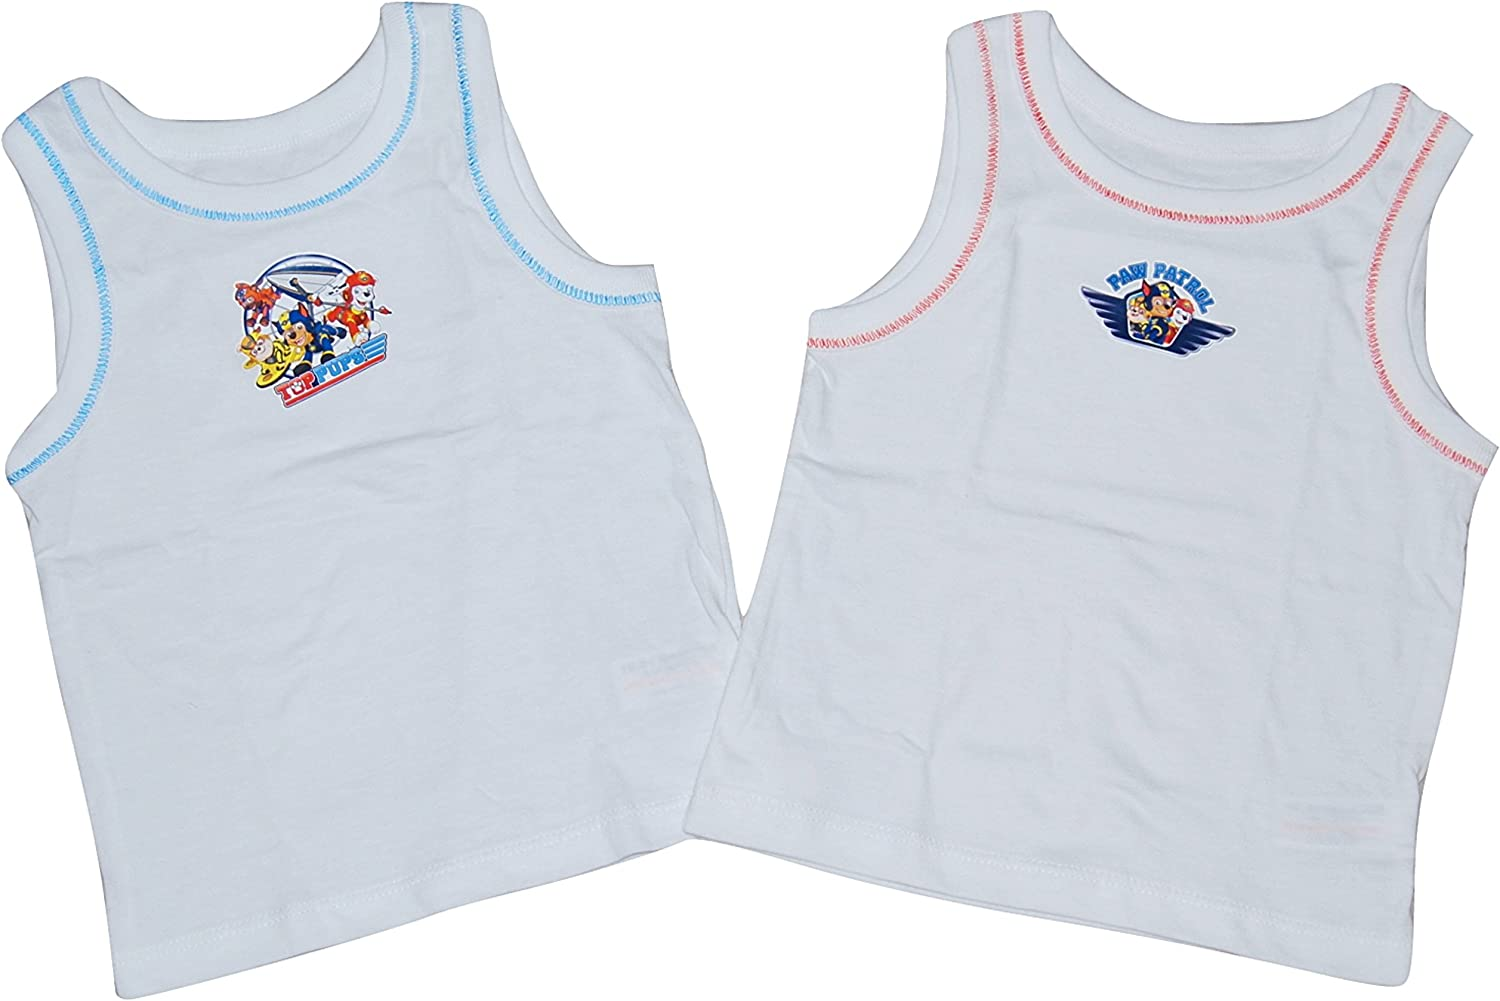 Paw Patrol Boys Vests 2 Pack 18 Months - 5 Years: Amazon.co.uk: Clothing